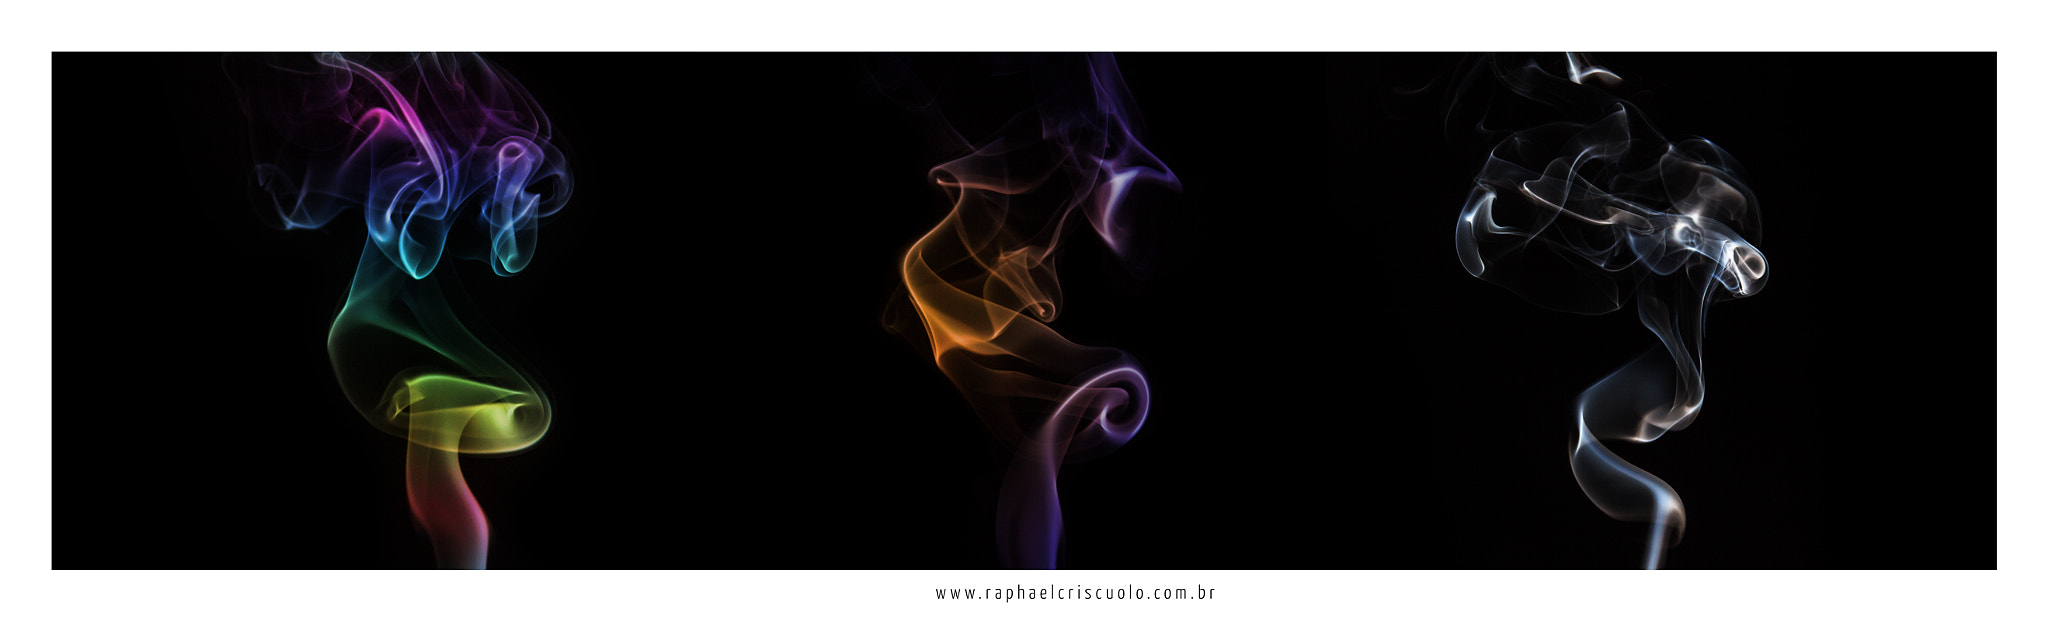 Photograph Smokes by Raphael Criscuolo on 500px